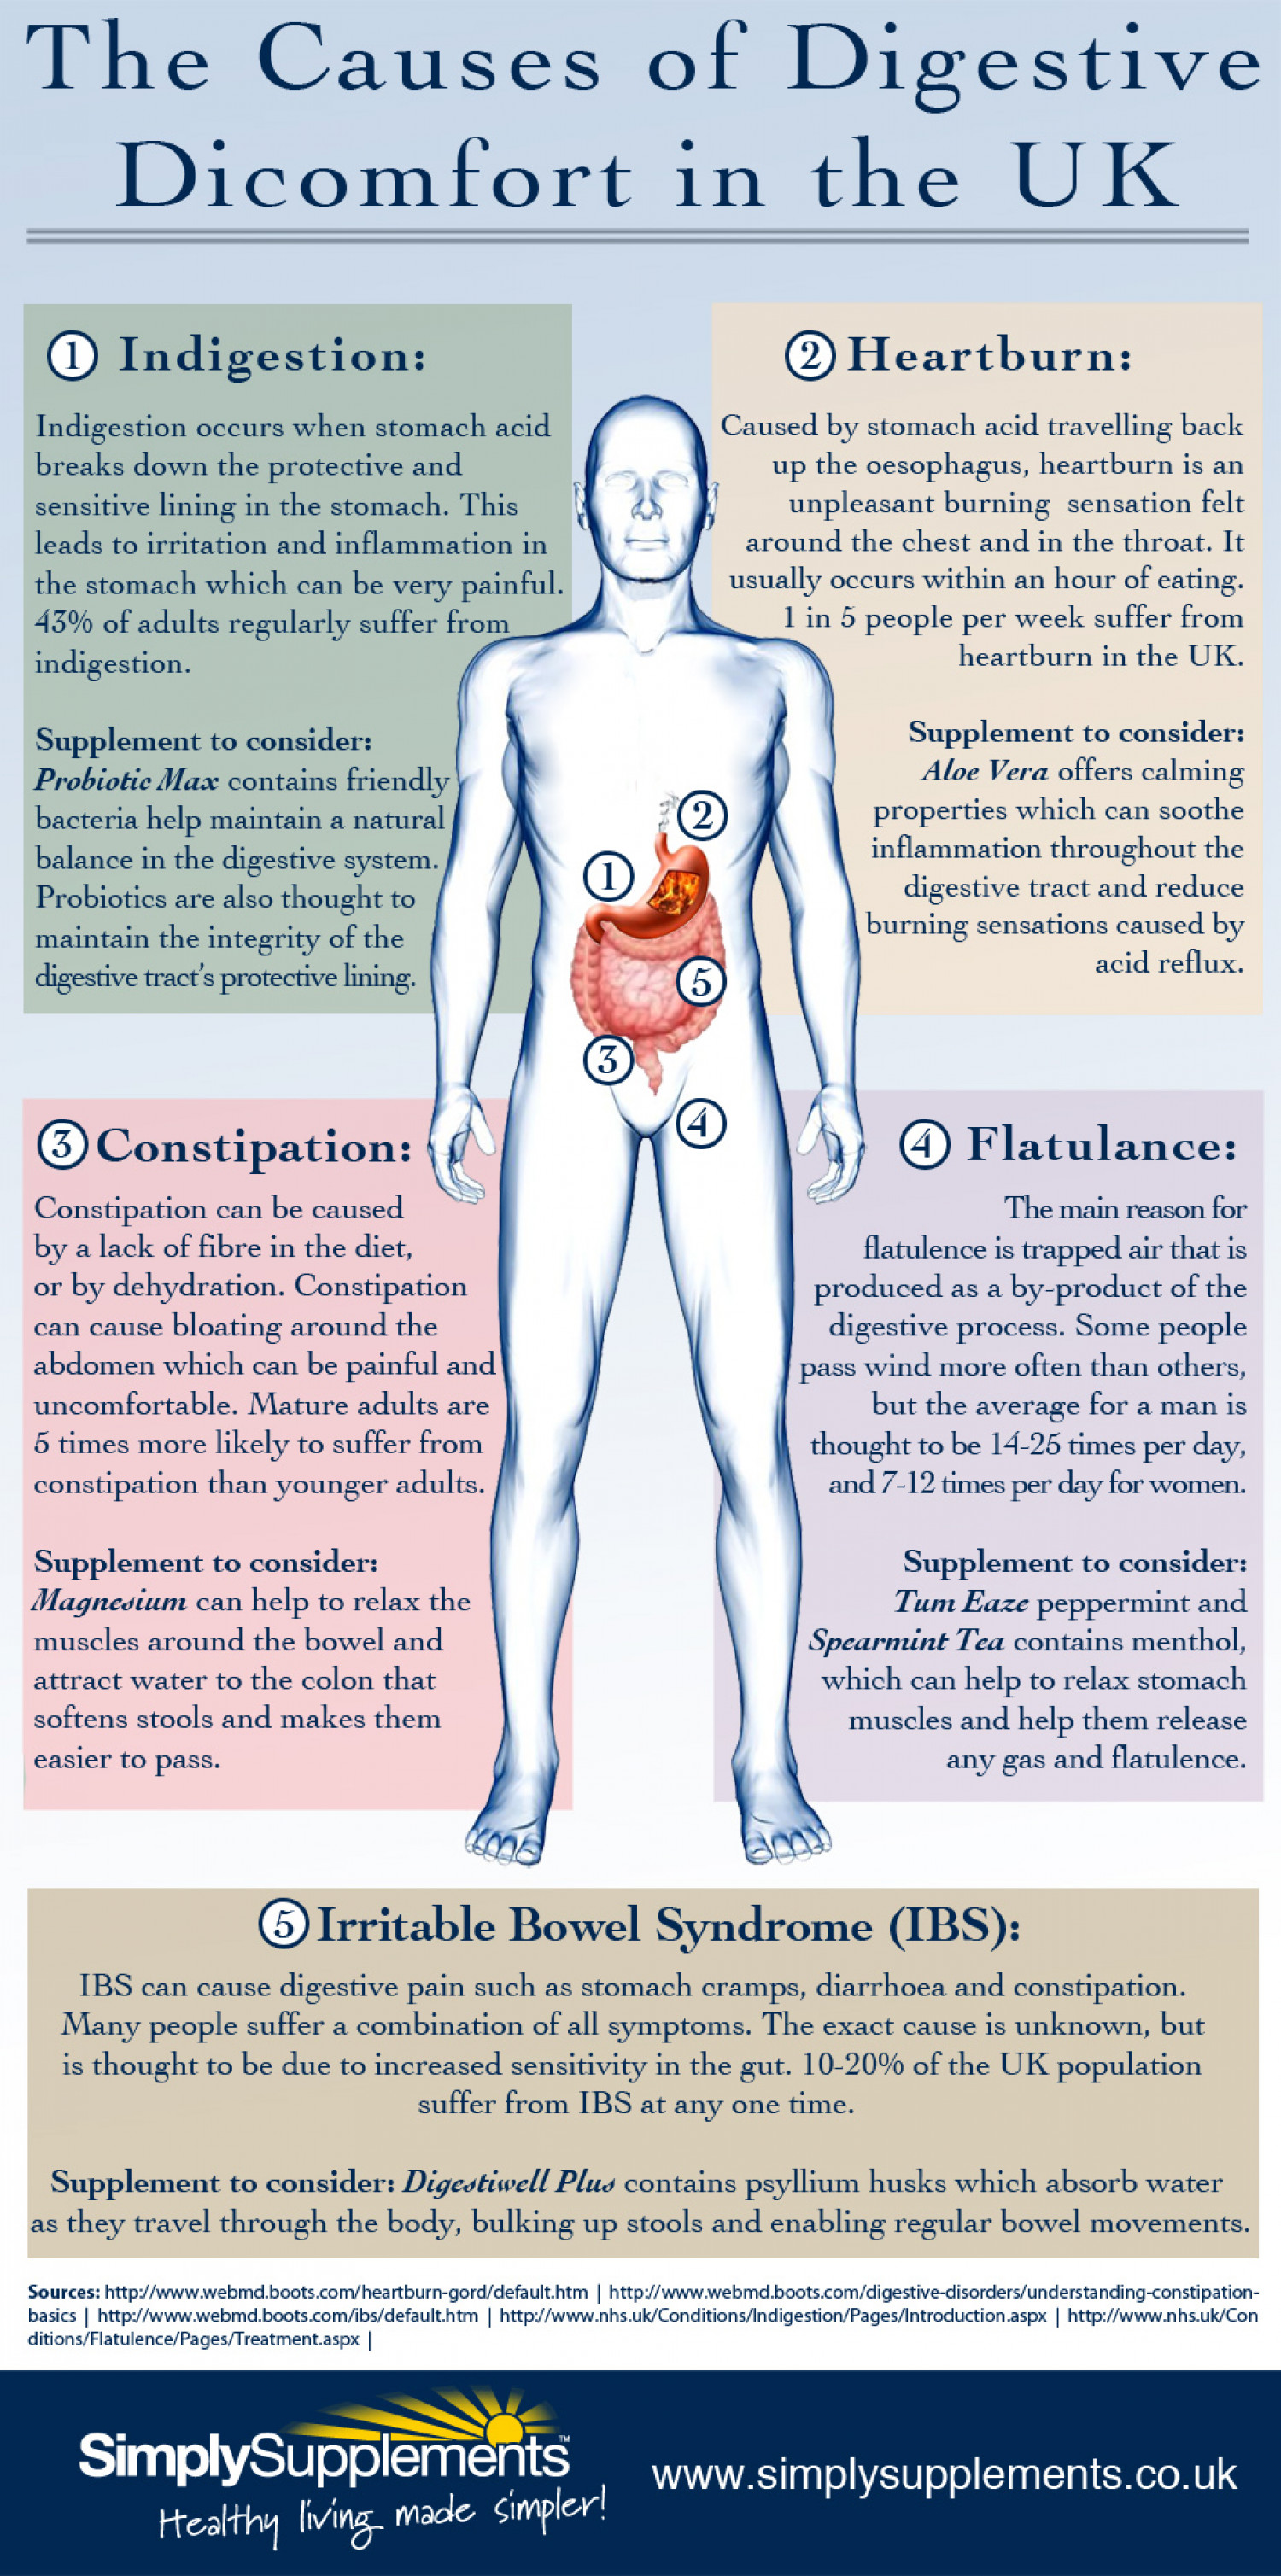 The Causes of Digestive Discomfort in the UK Infographic